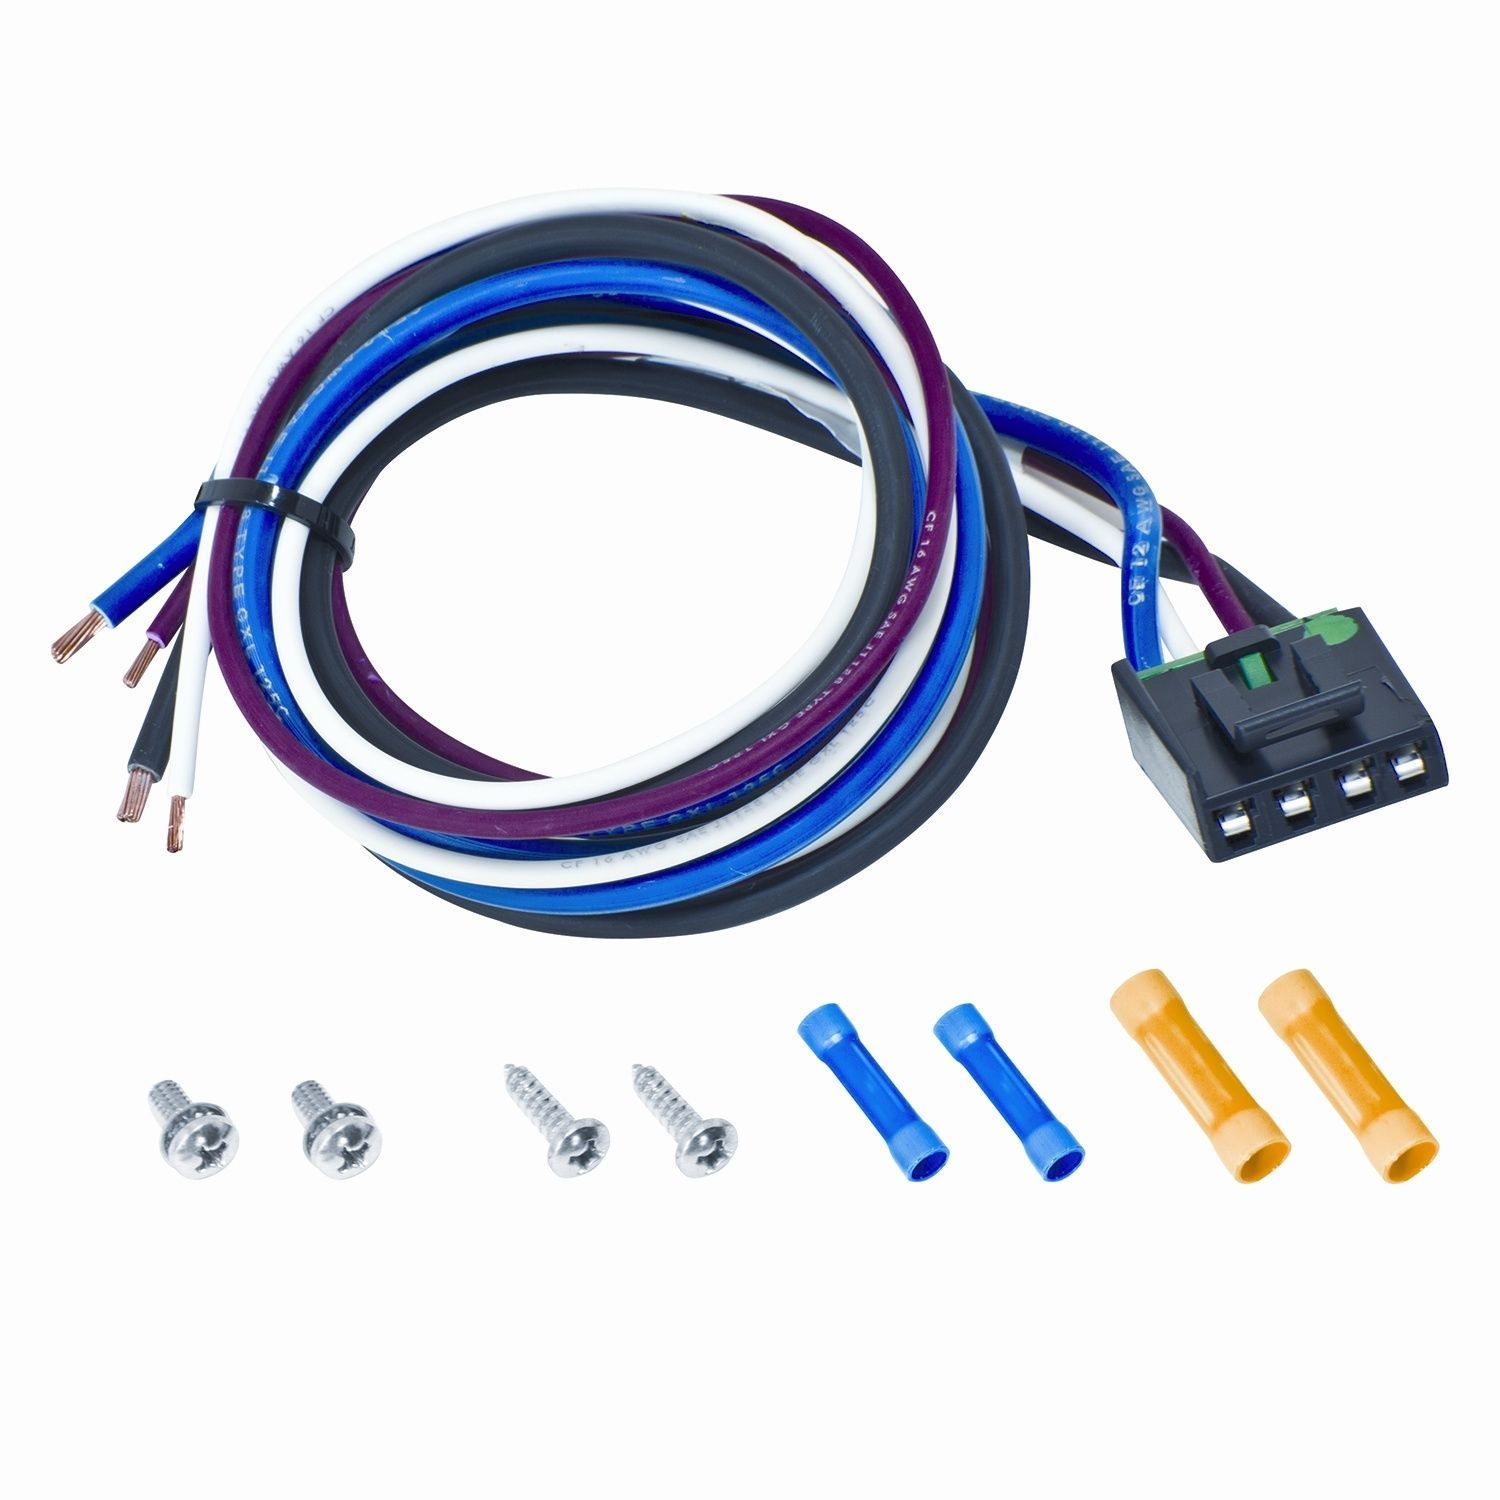 TEKONSHA BRAKE CONTROL CABLE HARNESS VOYAGER P3 P2 IQ